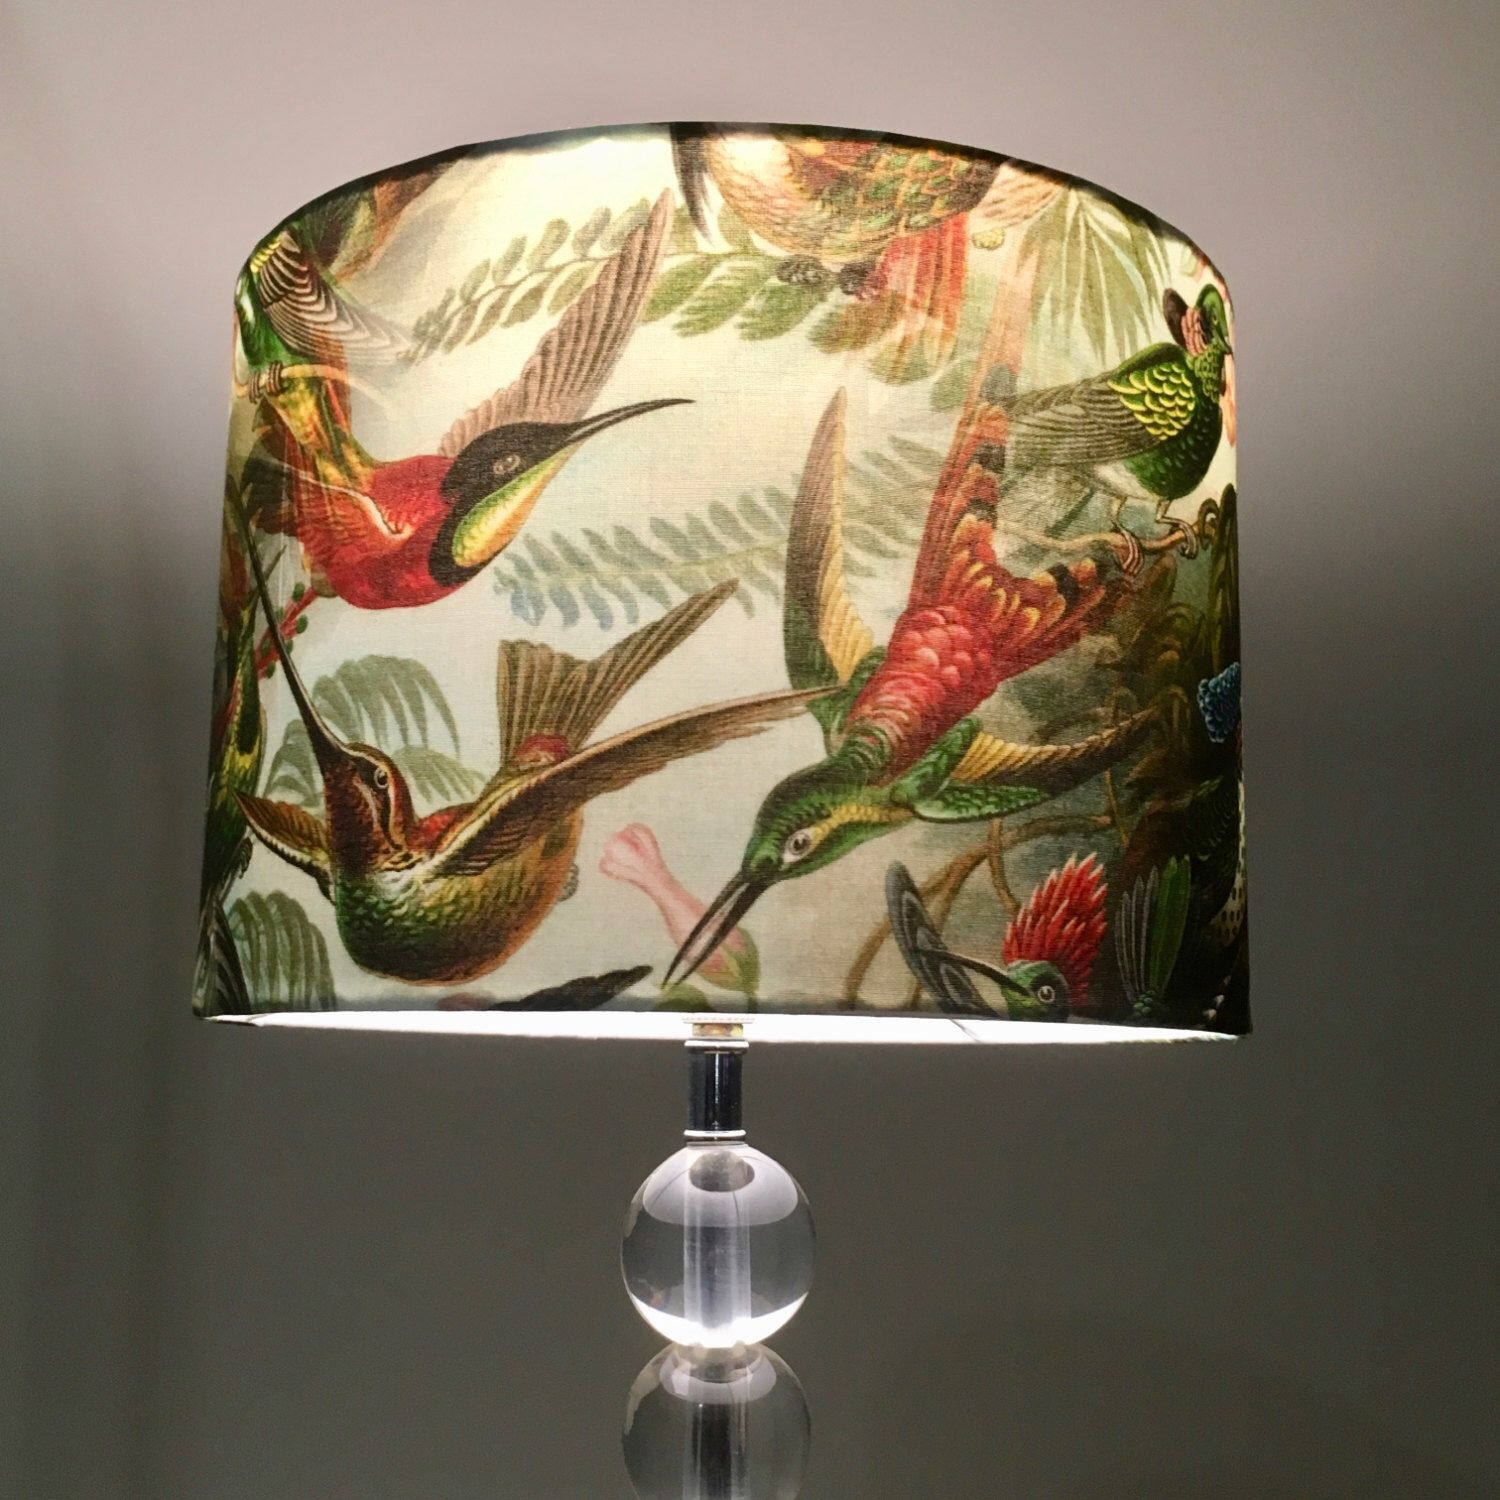 Hummingbird lamp shade bird lamp shade ernst haeckel hummingbirds hummingbird lamp shade bird lamp shade ernst haeckel hummingbirds lamp shade by rooelliestudio on etsy aloadofball